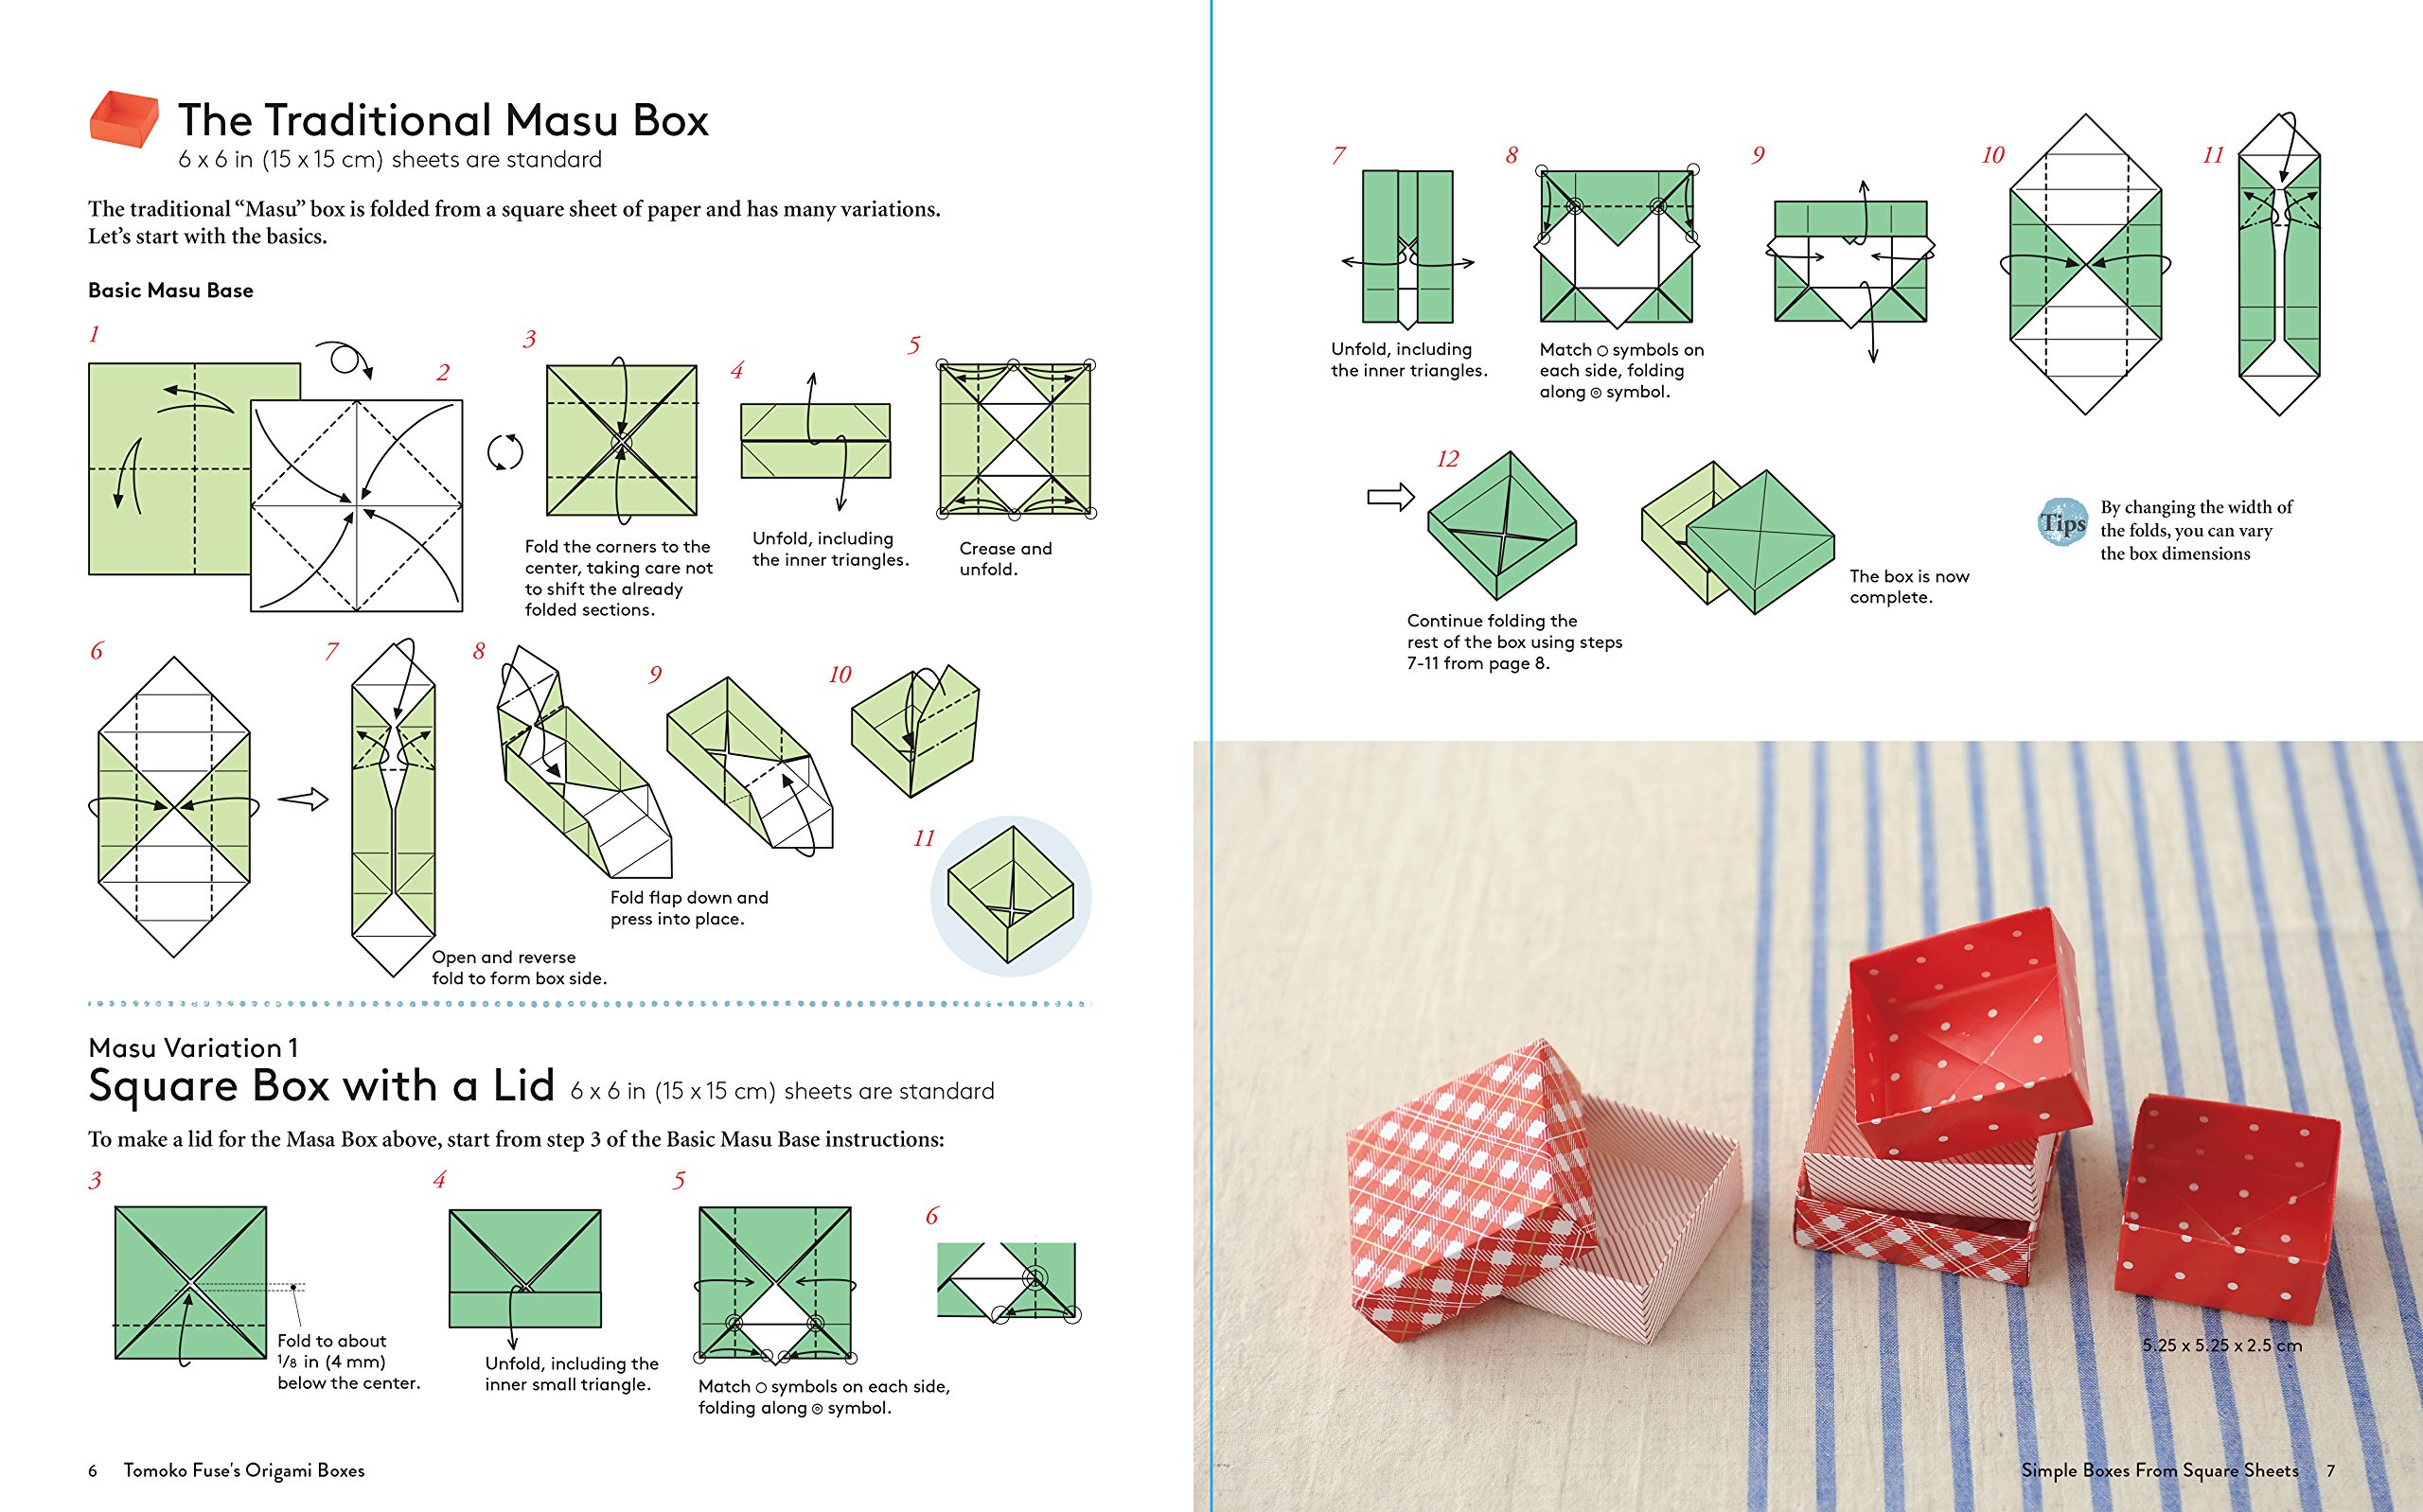 Tomoko Fuses Origami Boxes Beautiful Paper Gift From Japans Fuse Hexagon Box Instructions Leading Master Book With 30 Projects 9780804850063